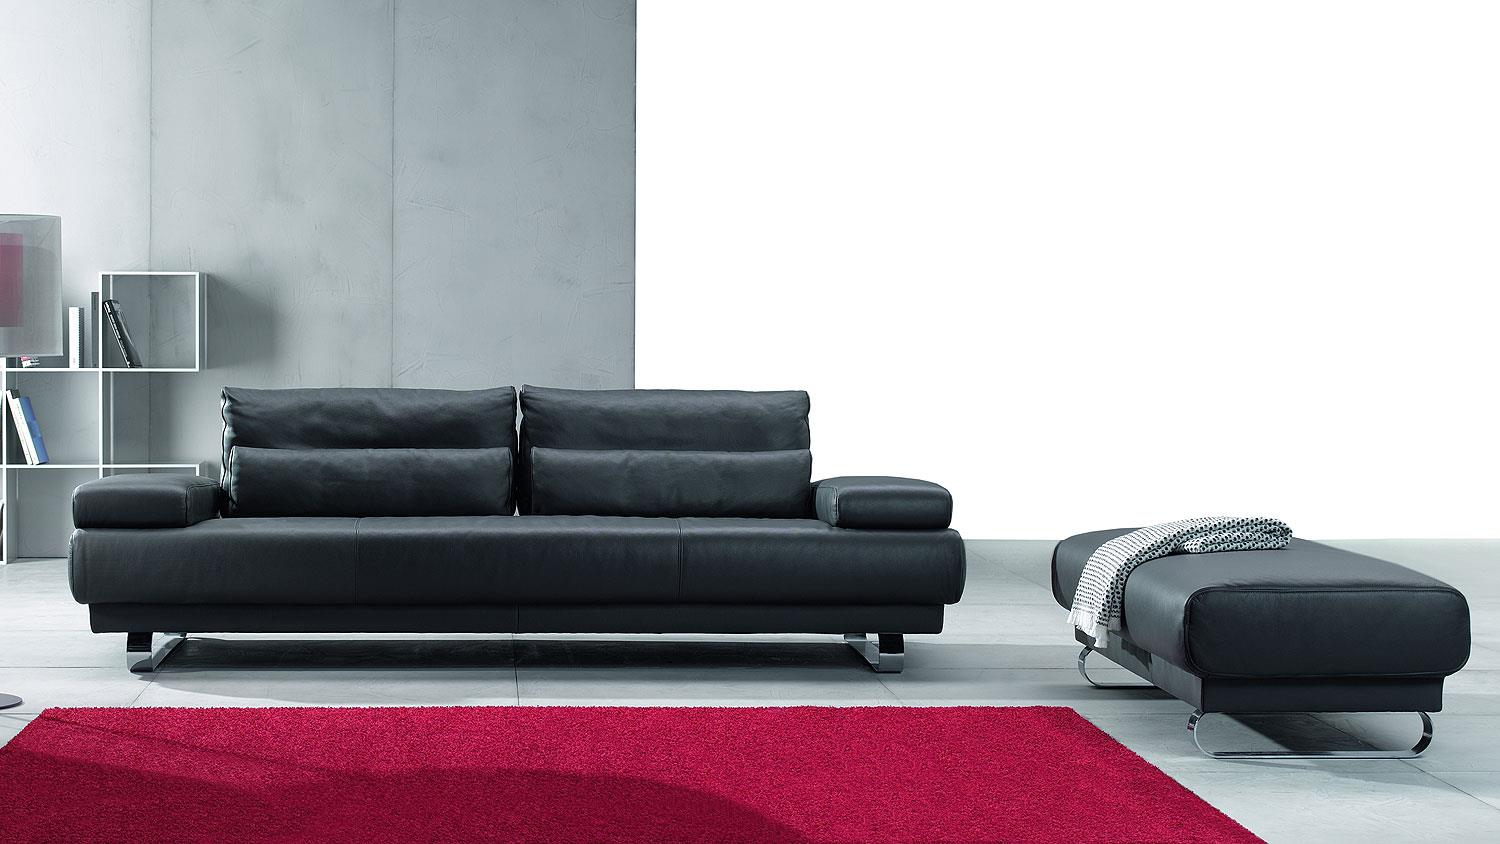 ledersofa schwarz cheap best zweisitzer ledersofa schwarz in schwabach with ledersofa. Black Bedroom Furniture Sets. Home Design Ideas